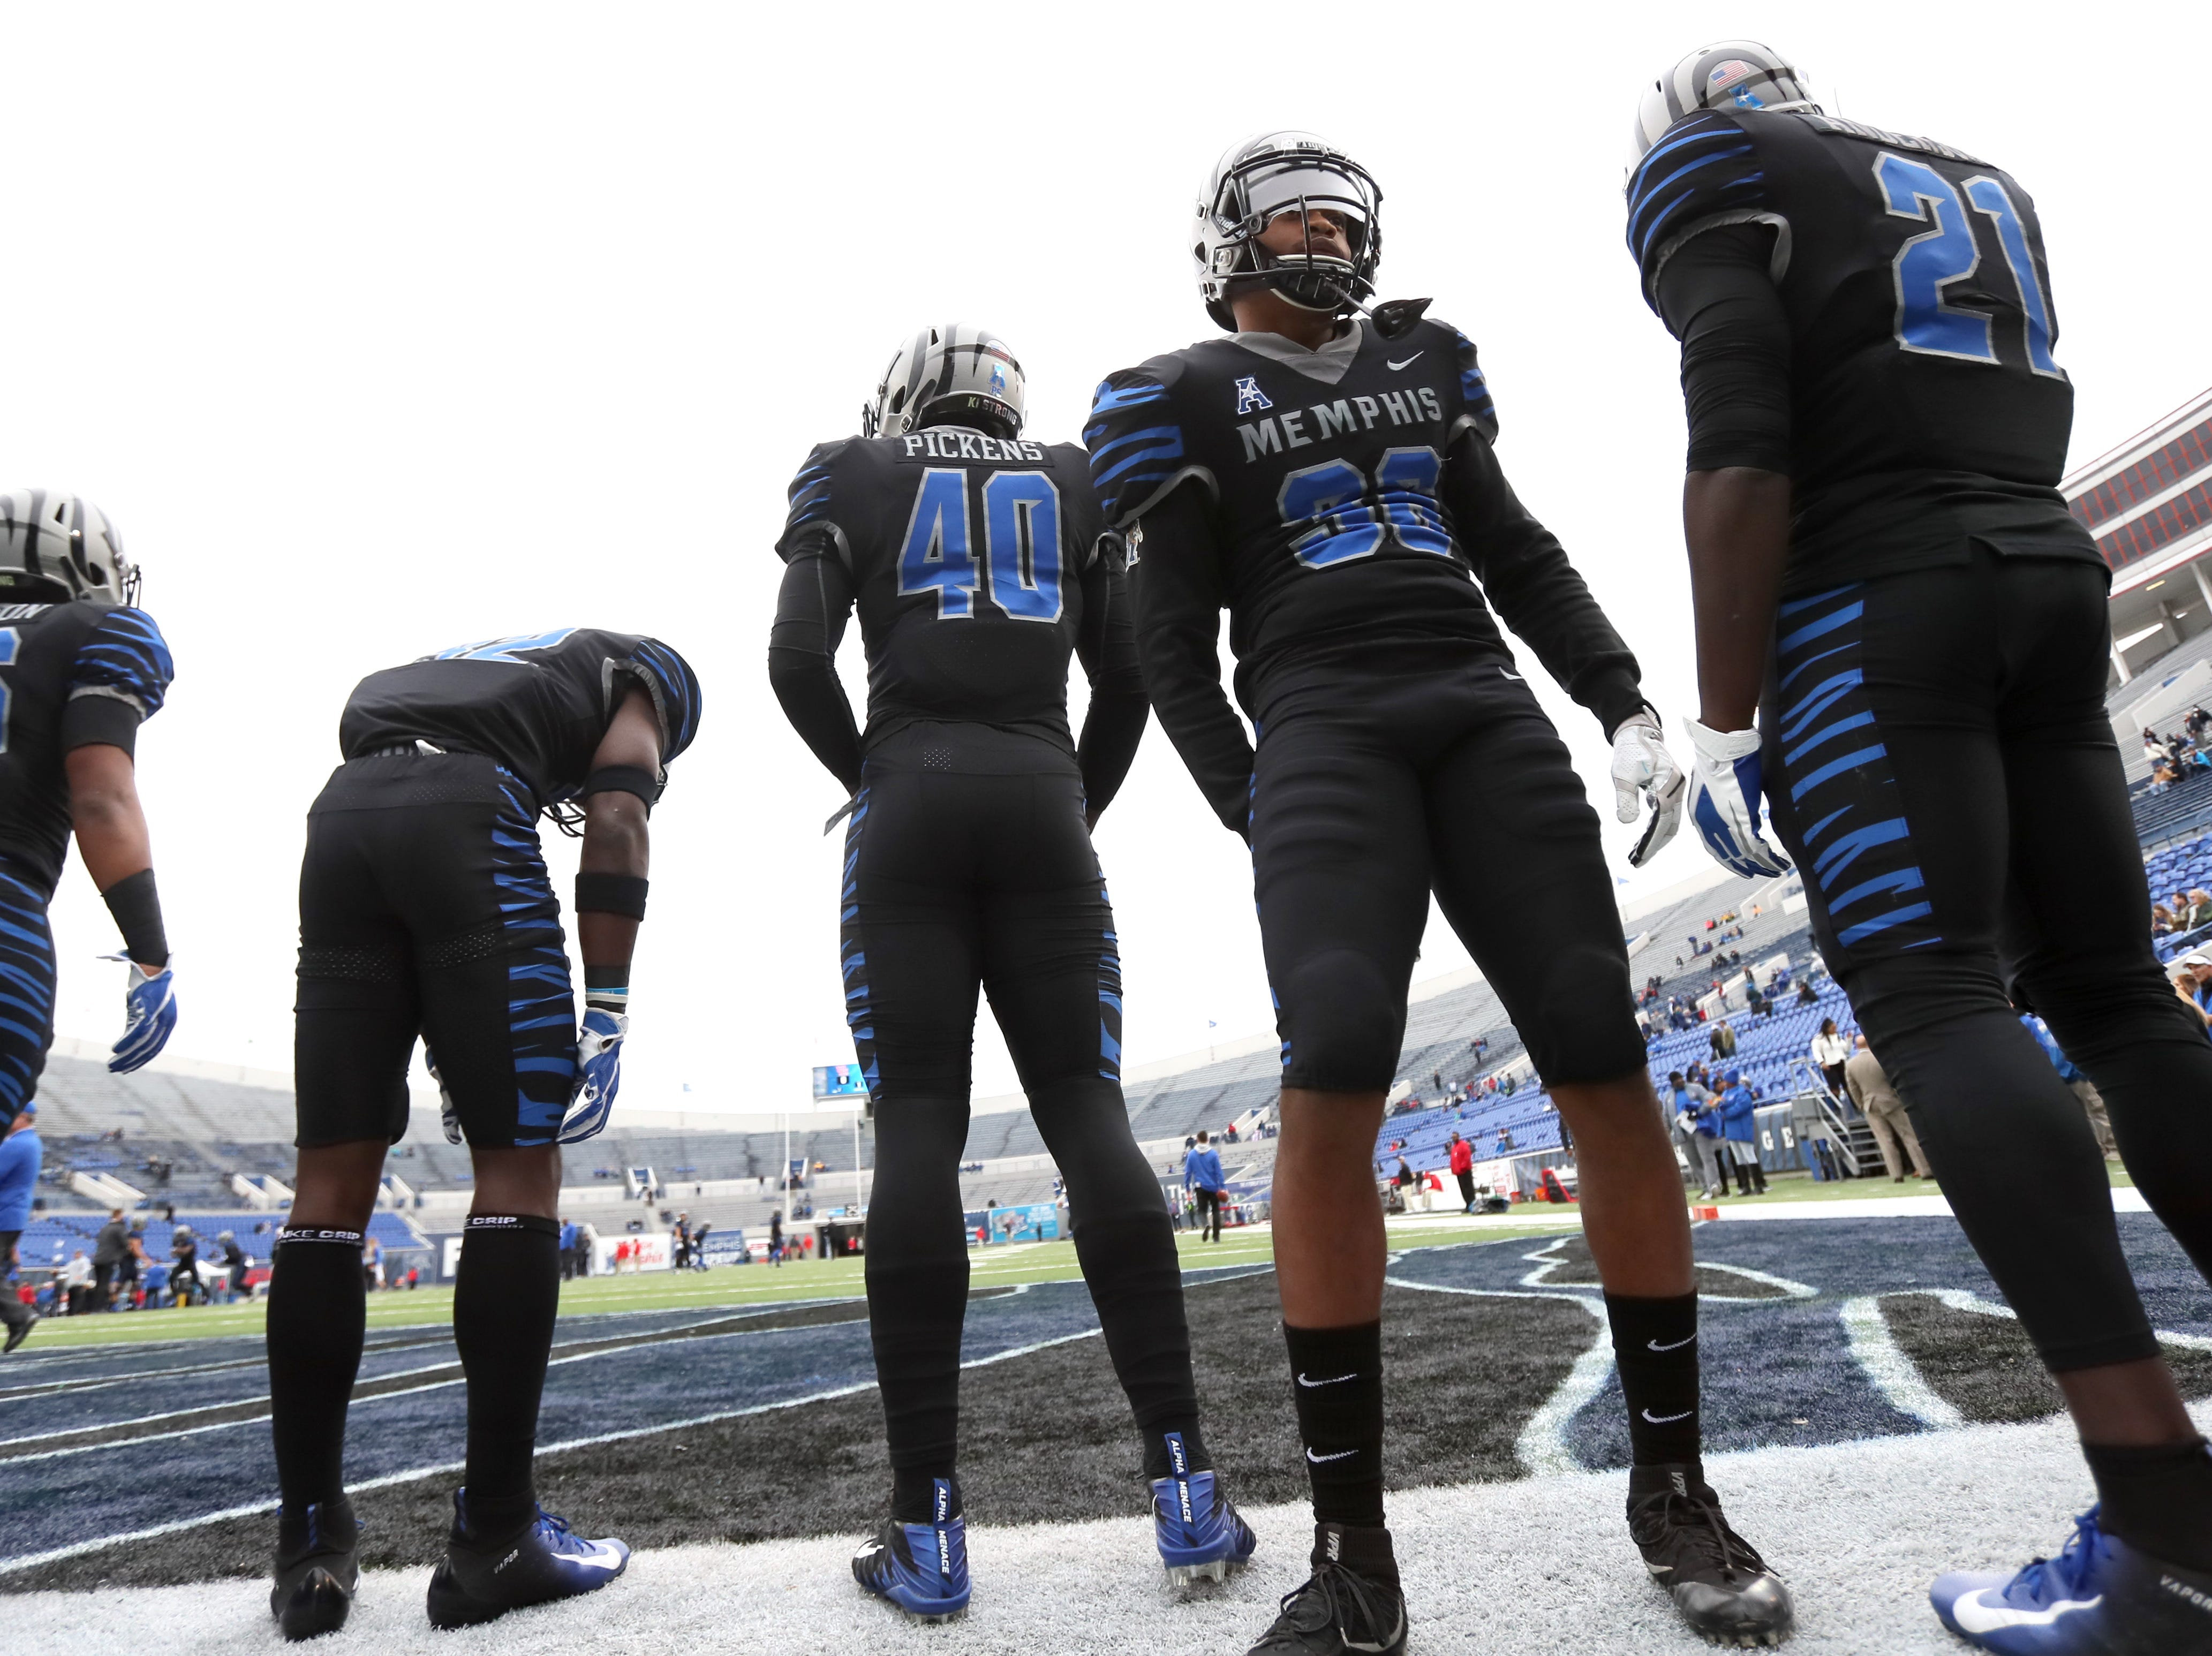 Memphis Tigers players warms up before their game against the Houston Cougars at the Liberty Bowl on Friday, Nov. 23, 2018.